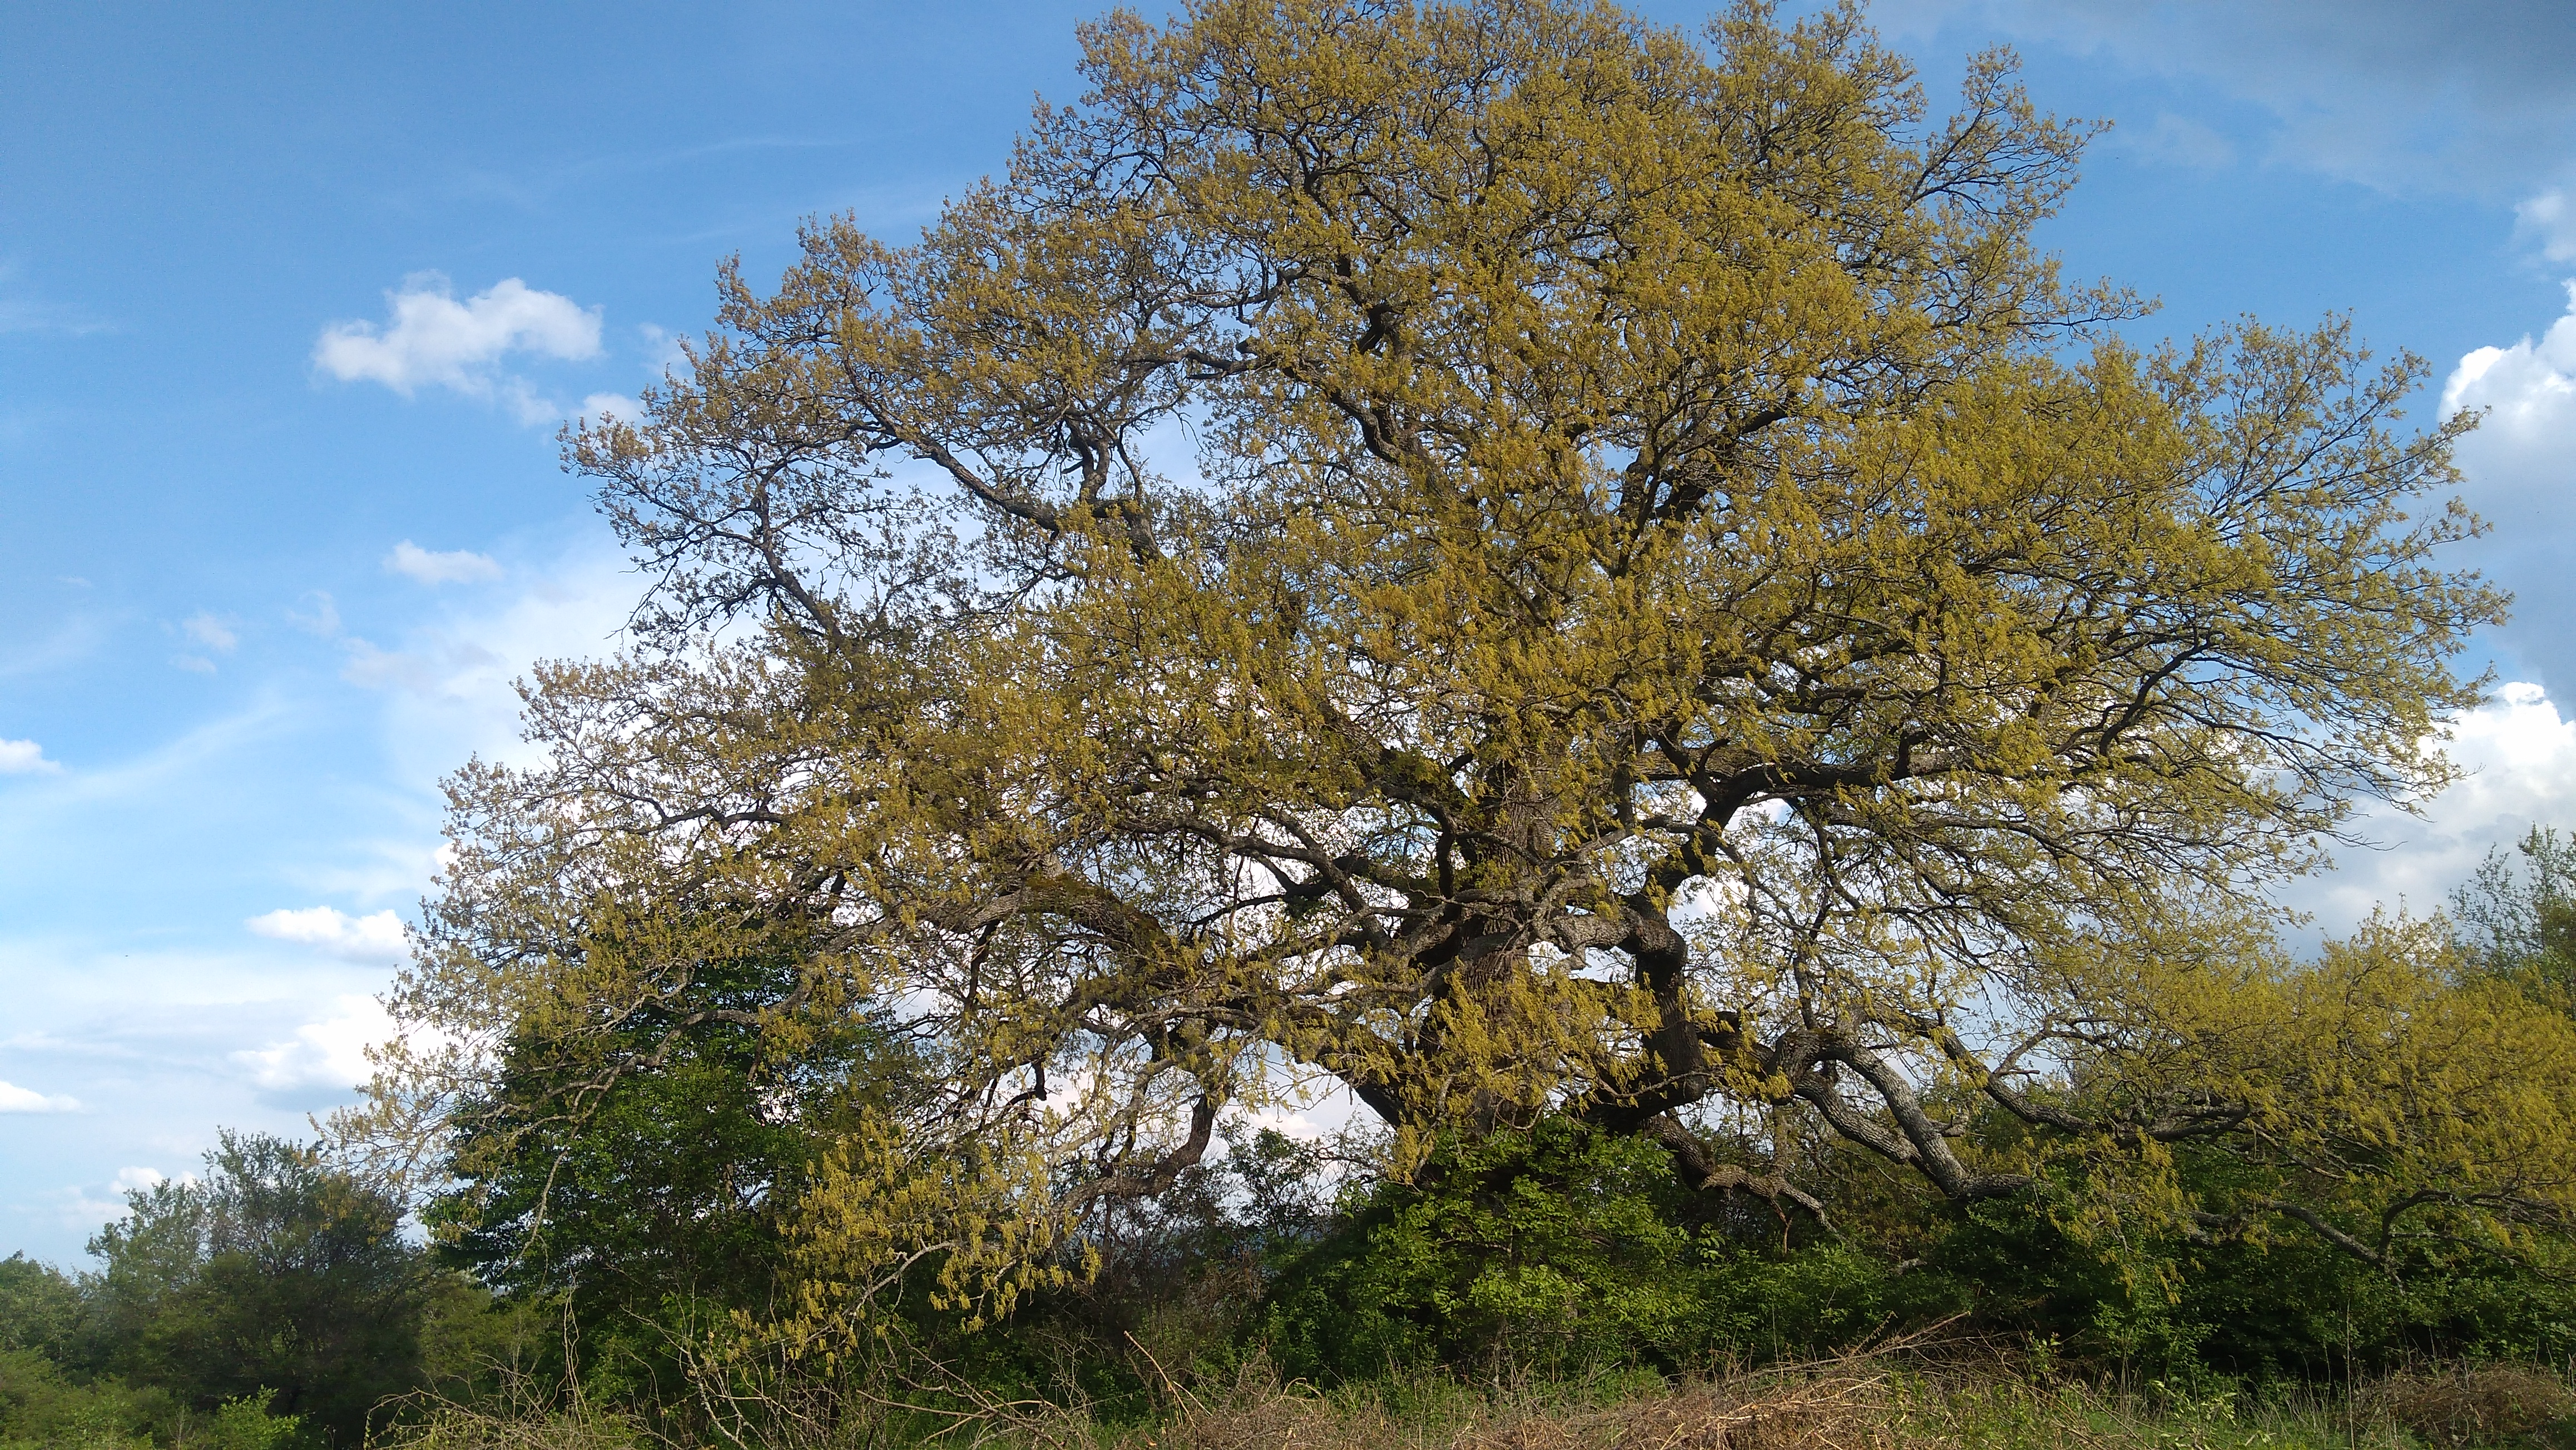 Turkey oak near rani lug village bulgaria european tree of the year 2019